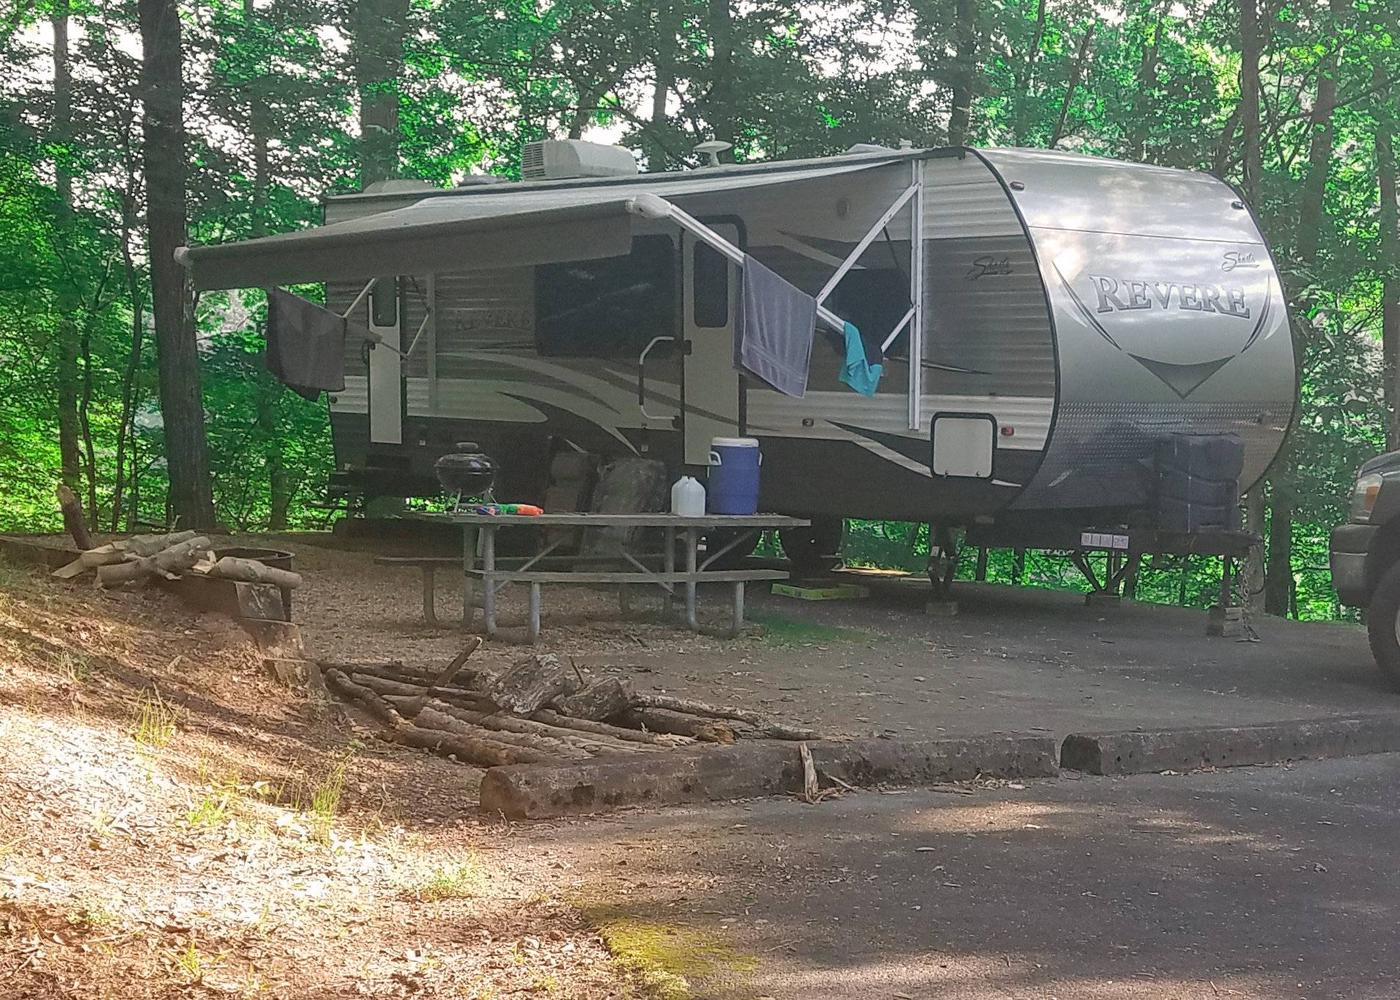 Awning-side clearance.Upper Stamp Creek Campground, campsite 18